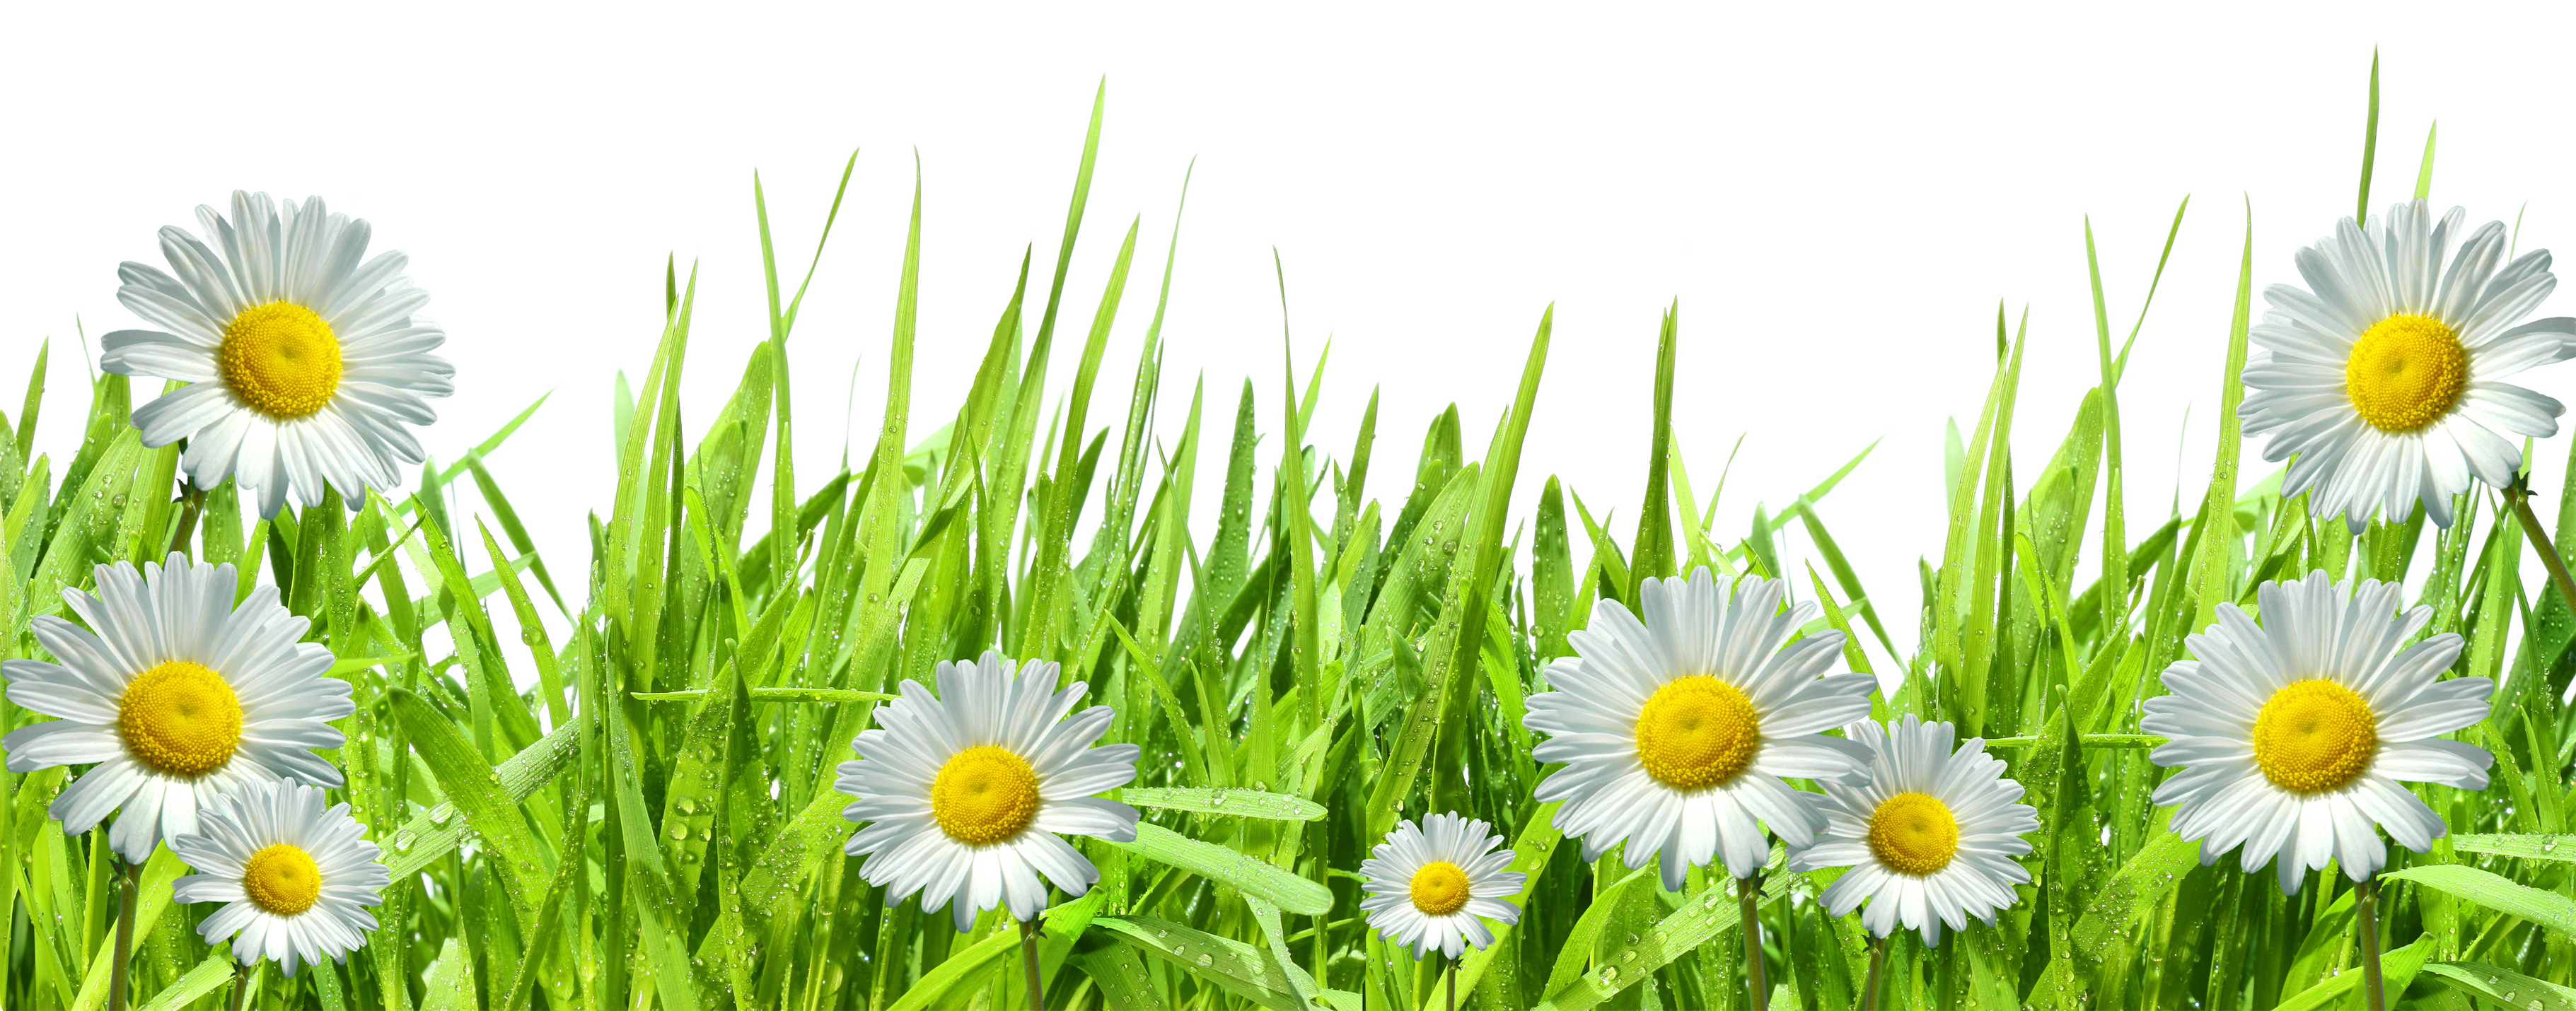 Spring flower border png. Large transparent grass with